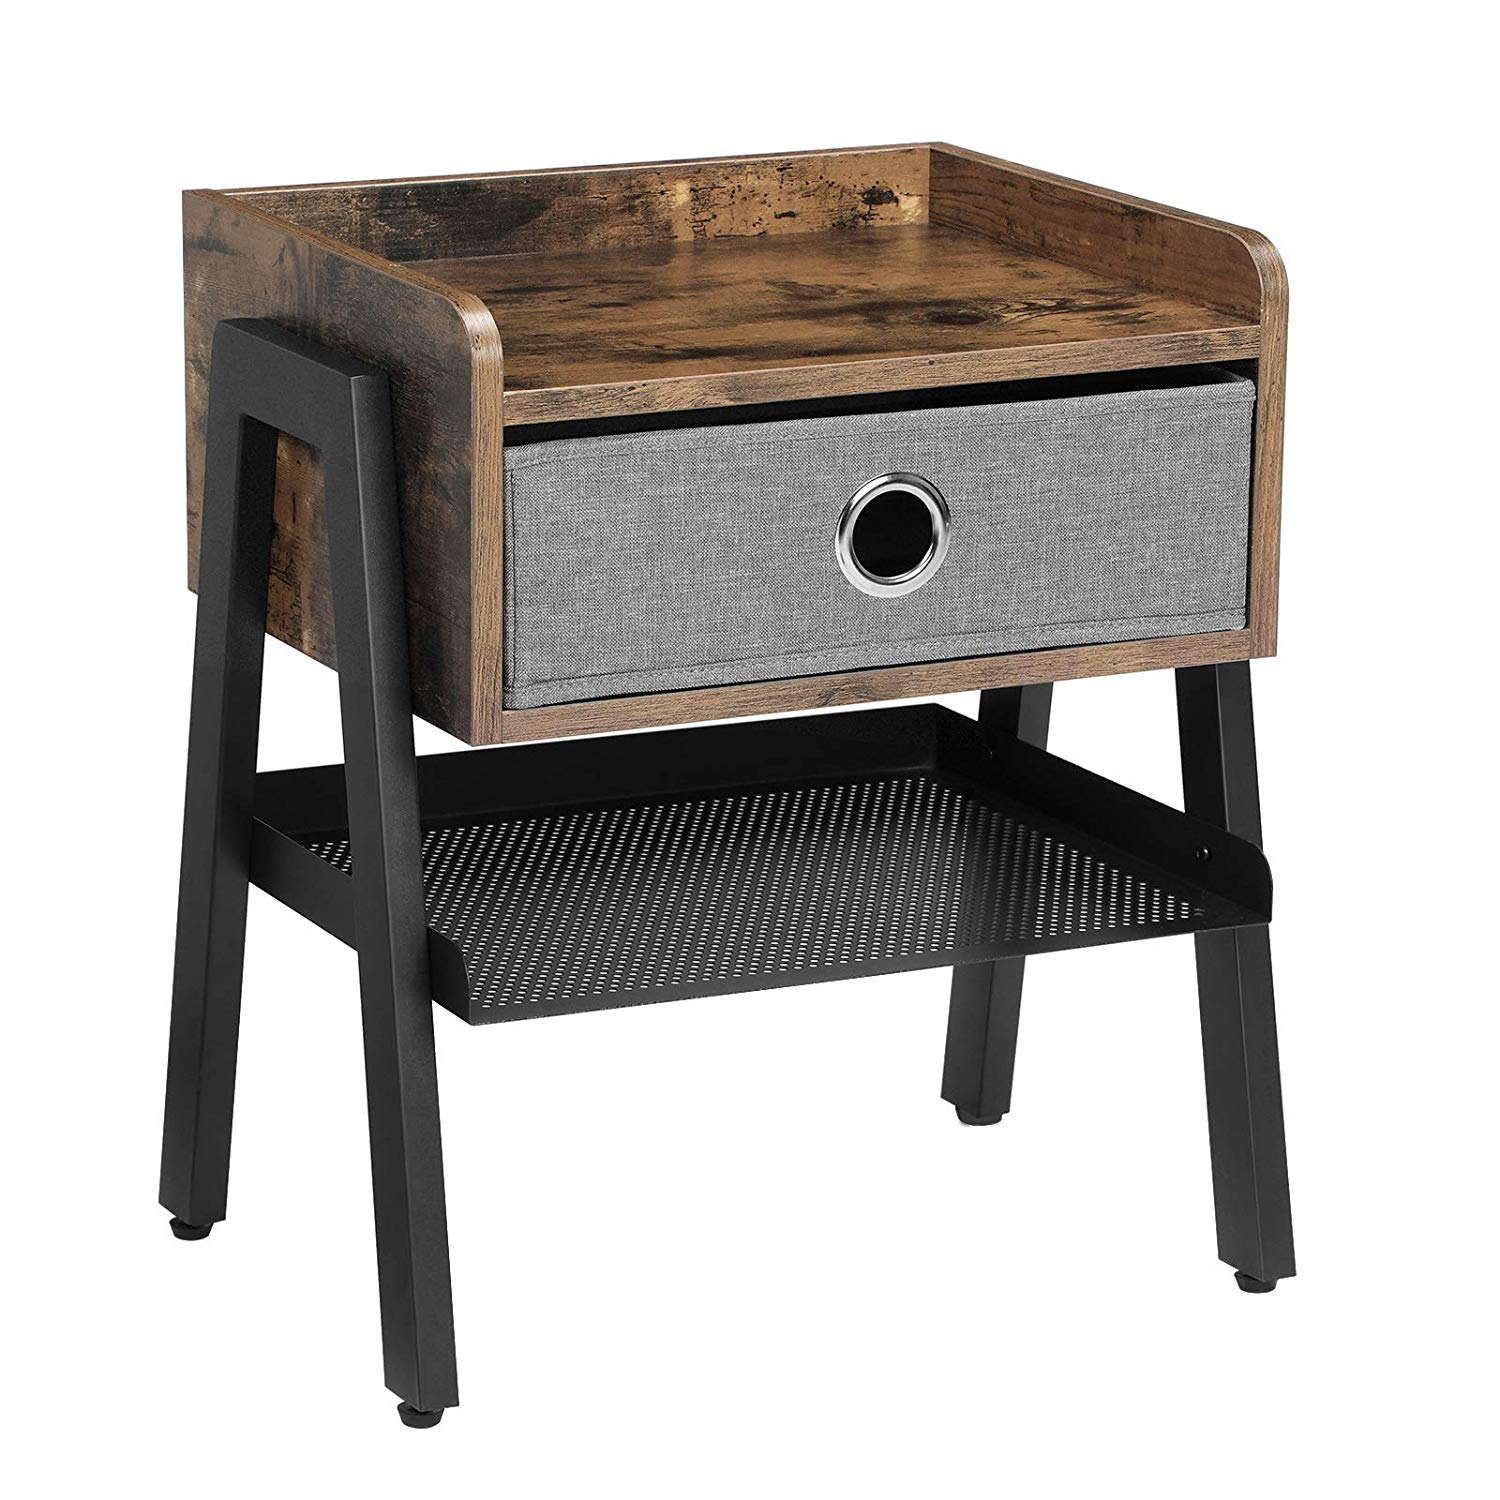 songmics vintage nightstand end table with metal shelf room essentials stacking accent side for small spaces wood look furniture frame home formal dining chairs hampton bay patio